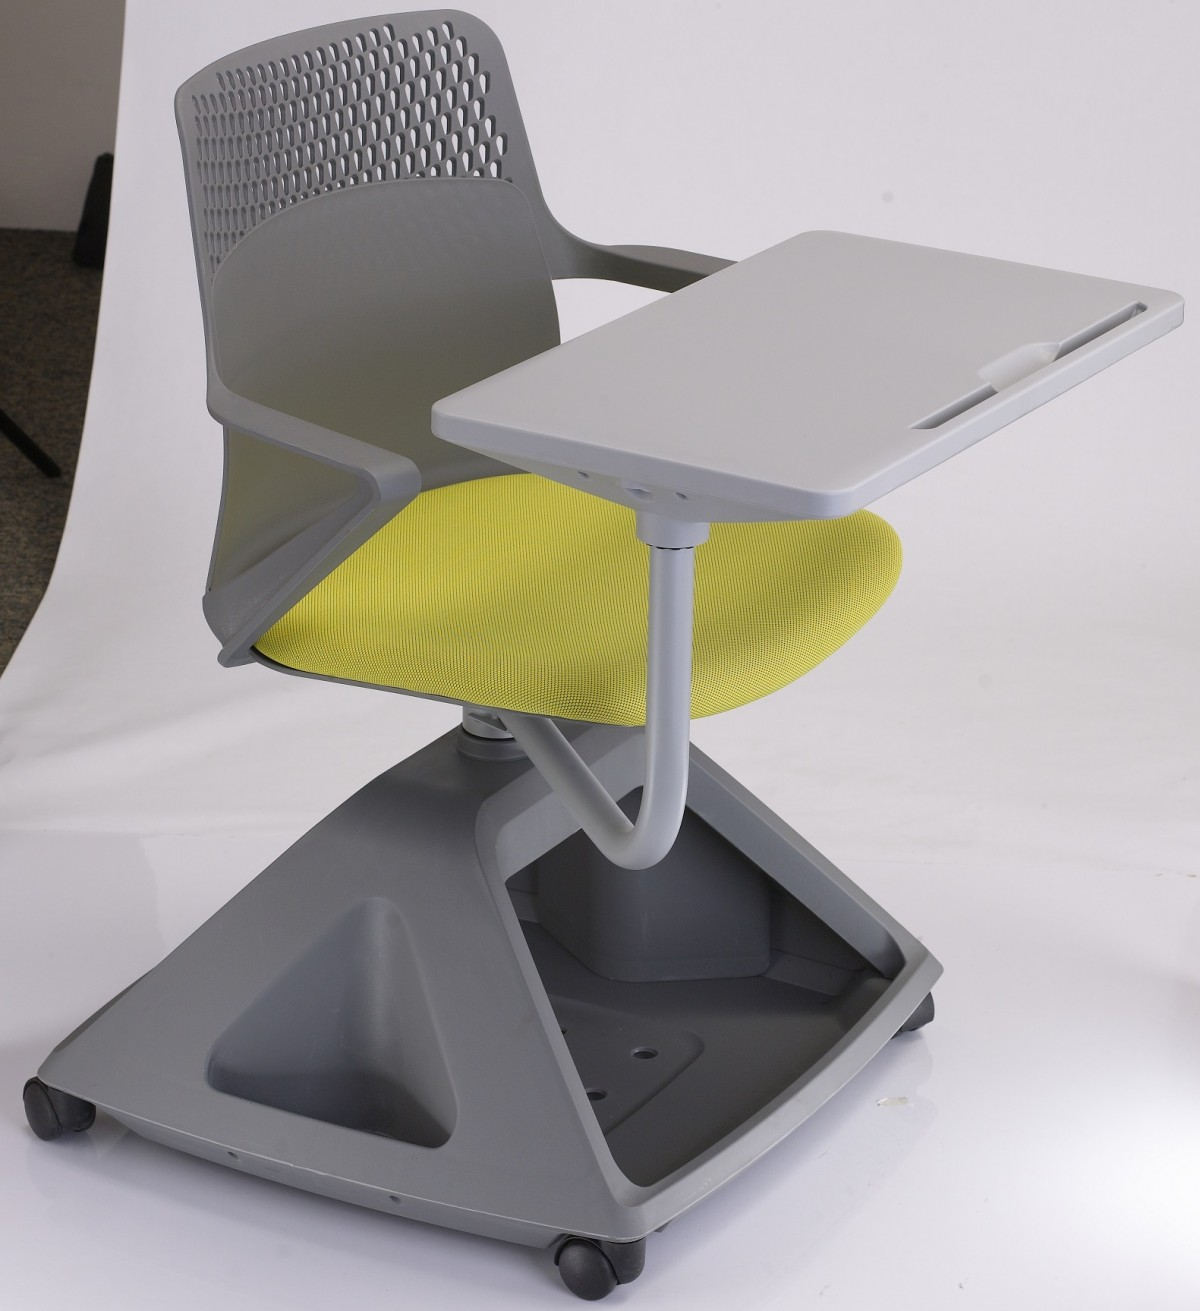 G vibe chair | Erotic images)